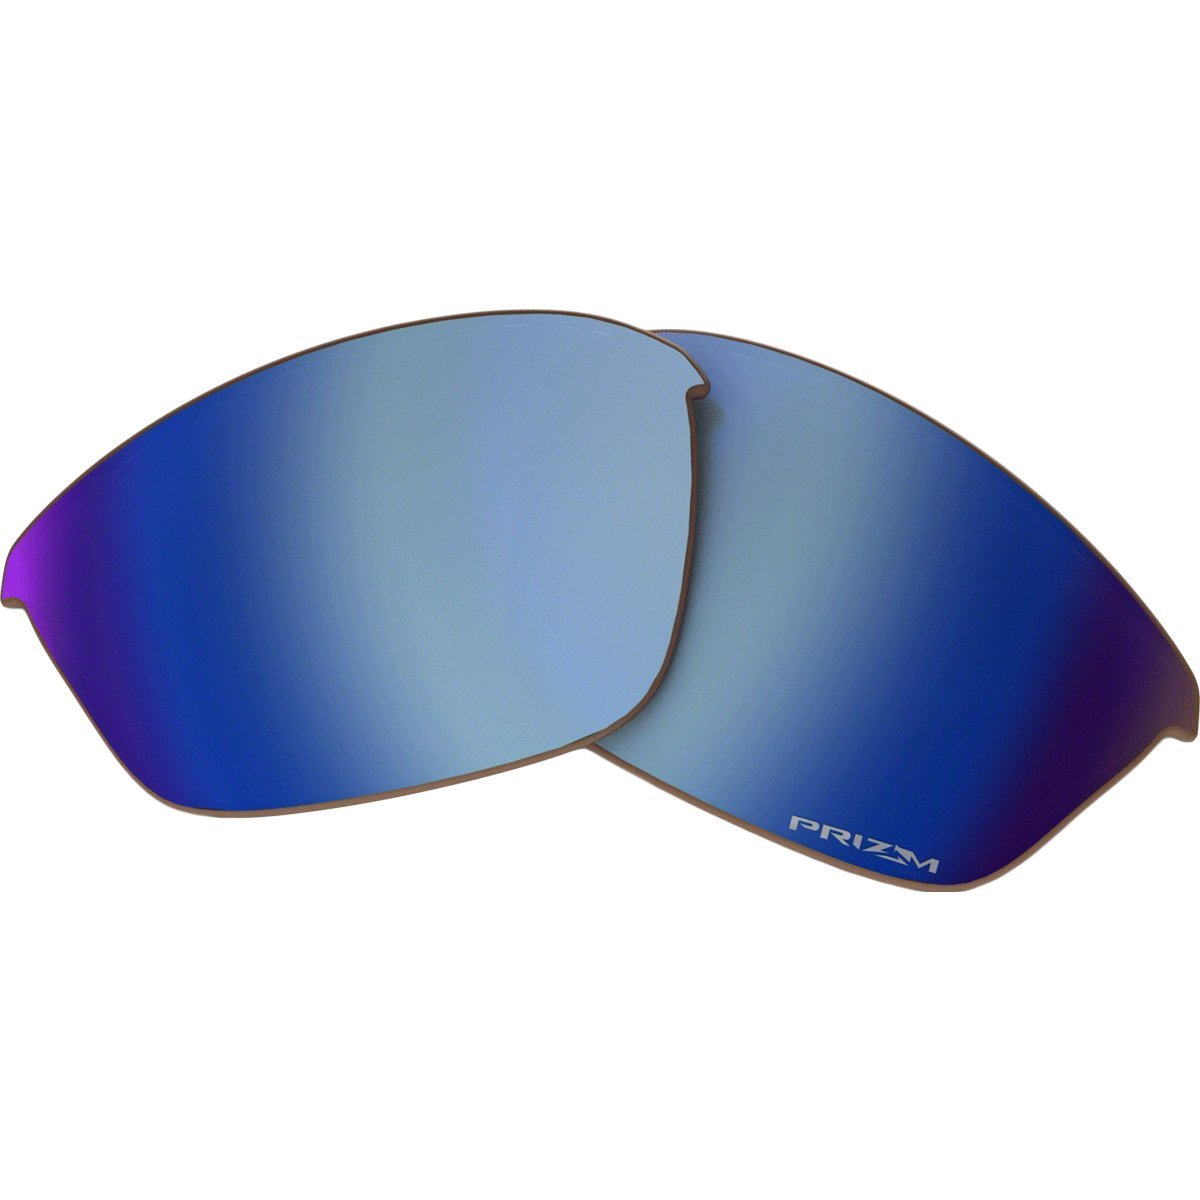 Oakley Half Jacket 2.0 Adult Replacement Lens Sunglass Accessories - Prizm Deep Water Polarized/One Size by Oakley